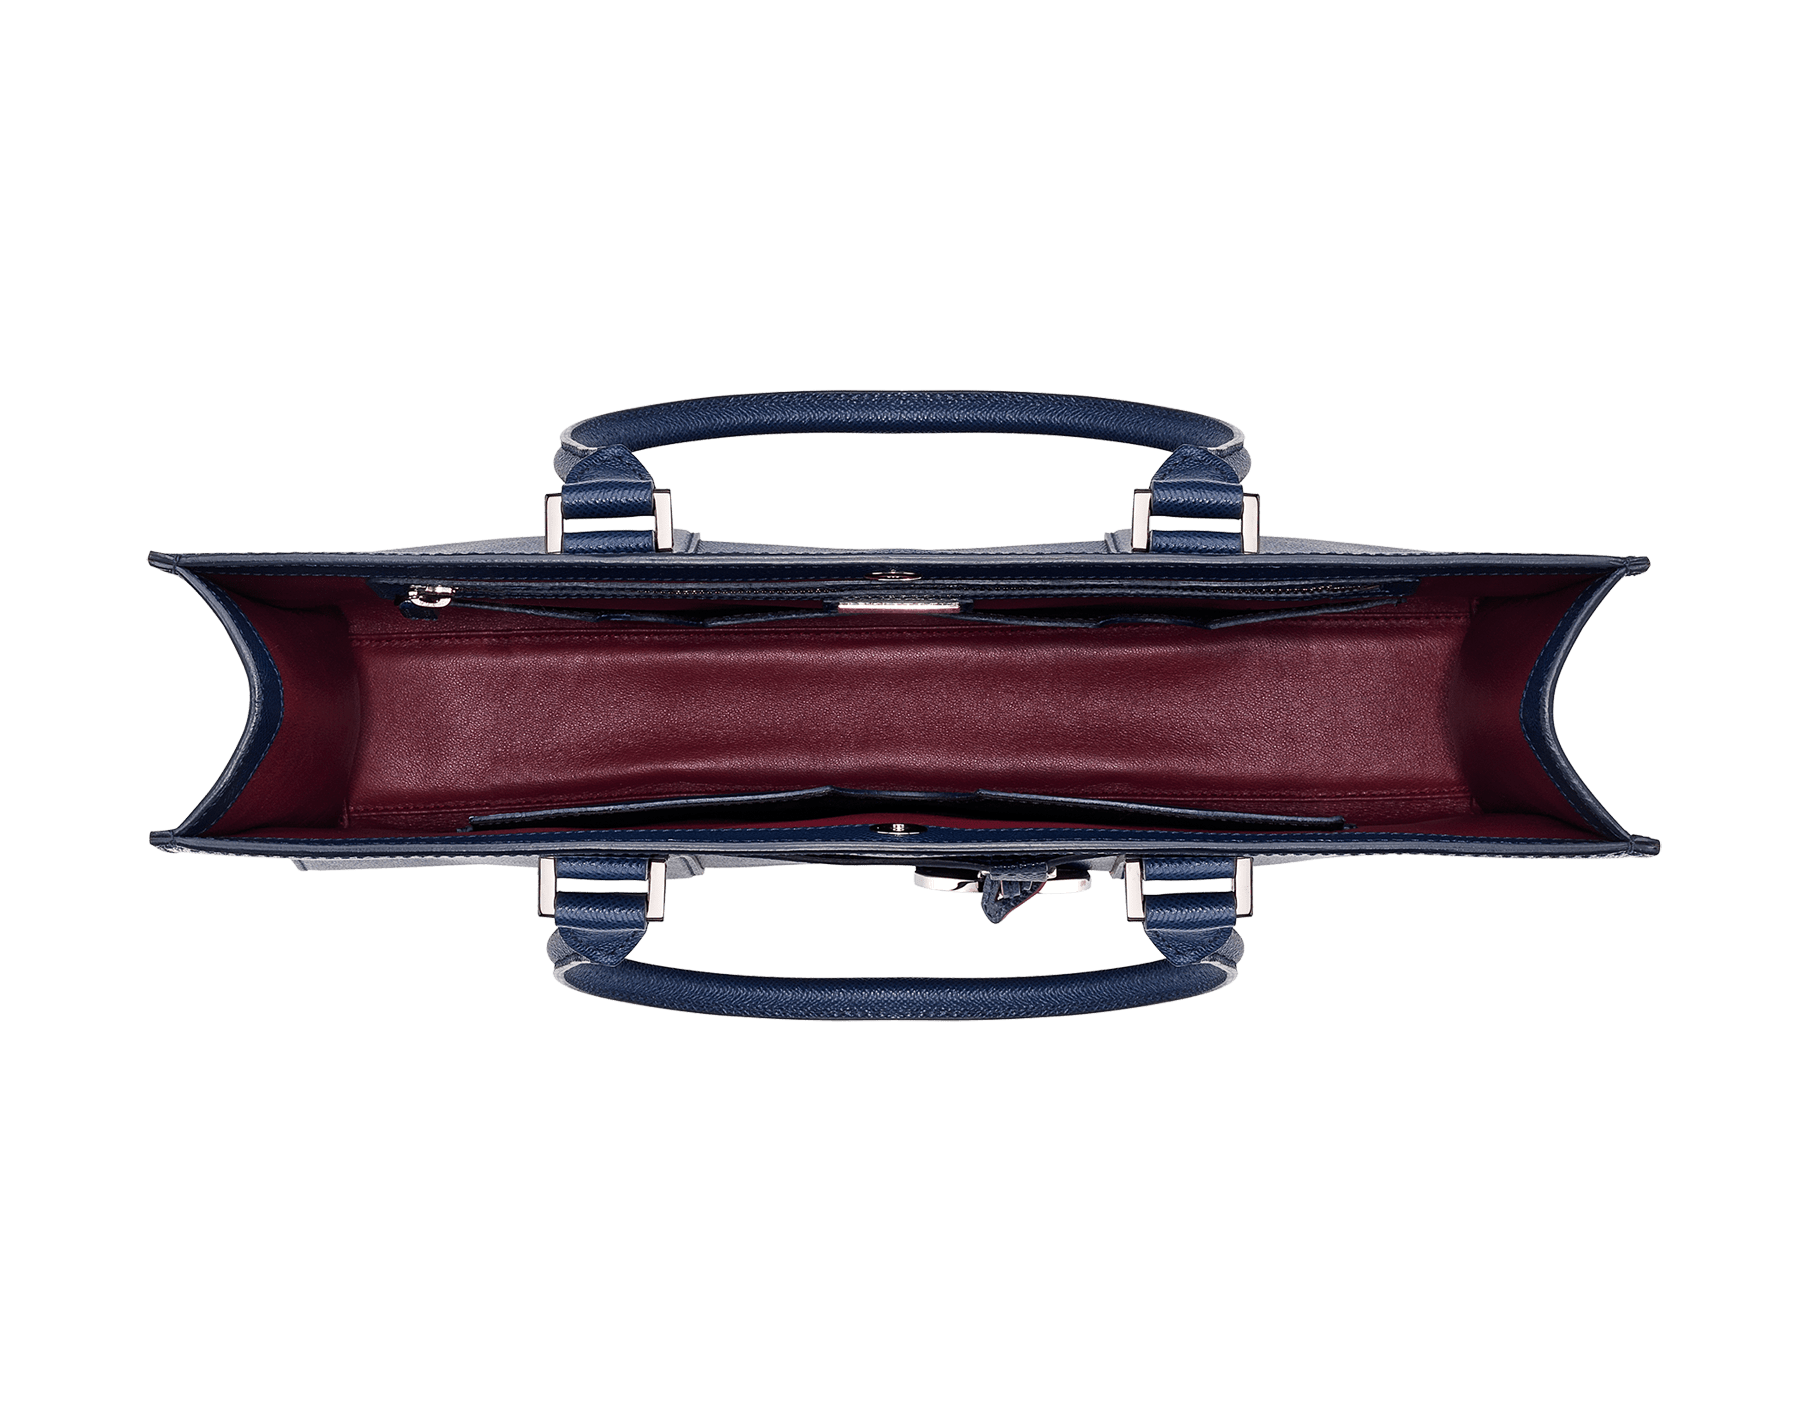 Tote bag in denim sapphire grain calf leather with brass palladium plated hardware. One zipped pocket, three open pockets and Bulgari logo metal tag inside. 39391 image 4